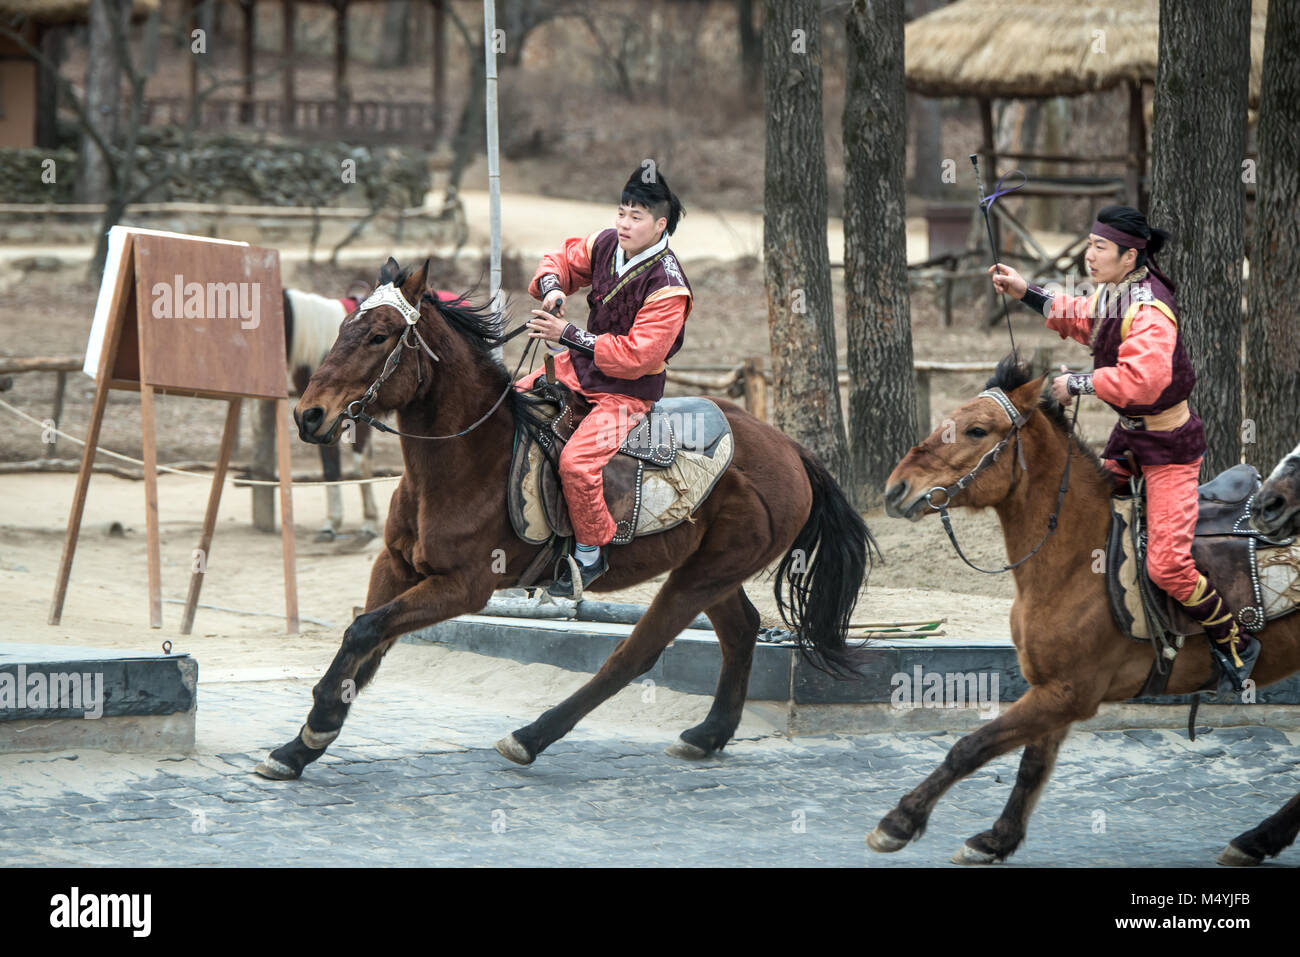 Participant a the Equestrian Feats act - Stock Image